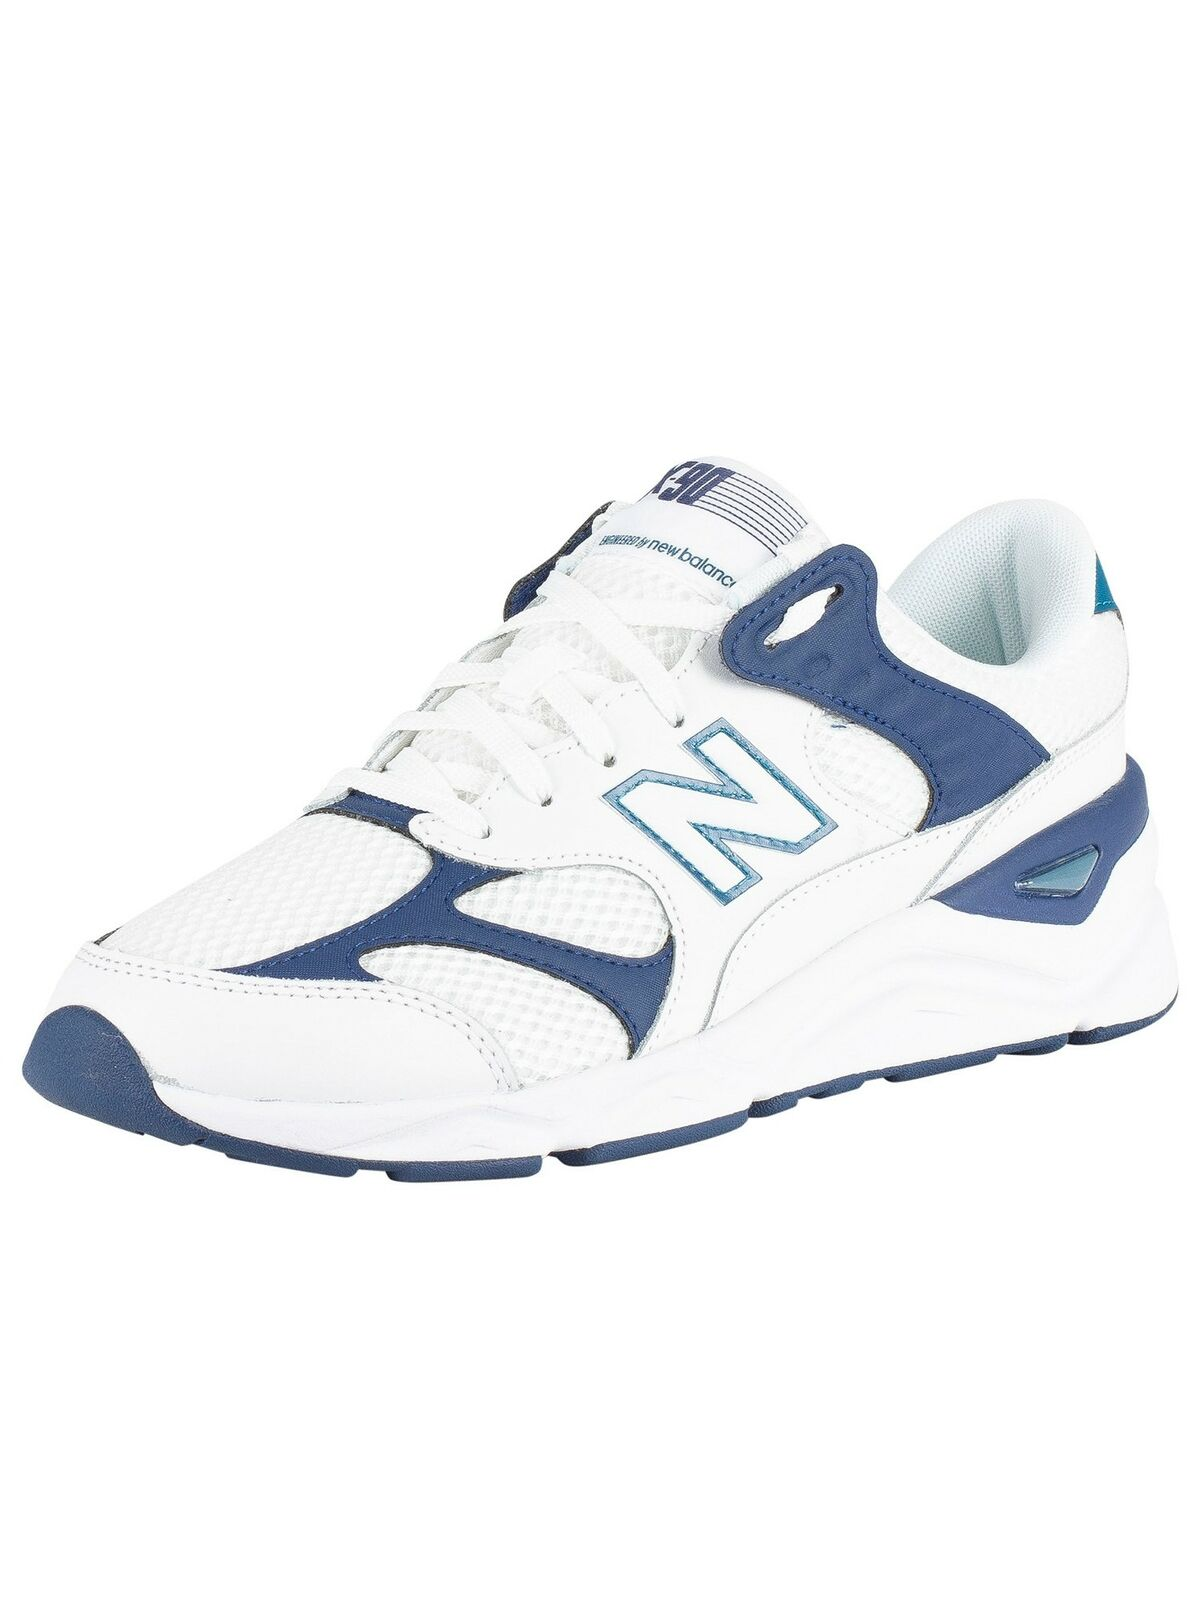 New Balance Men's X-90 Leather Mesh Trainers, White